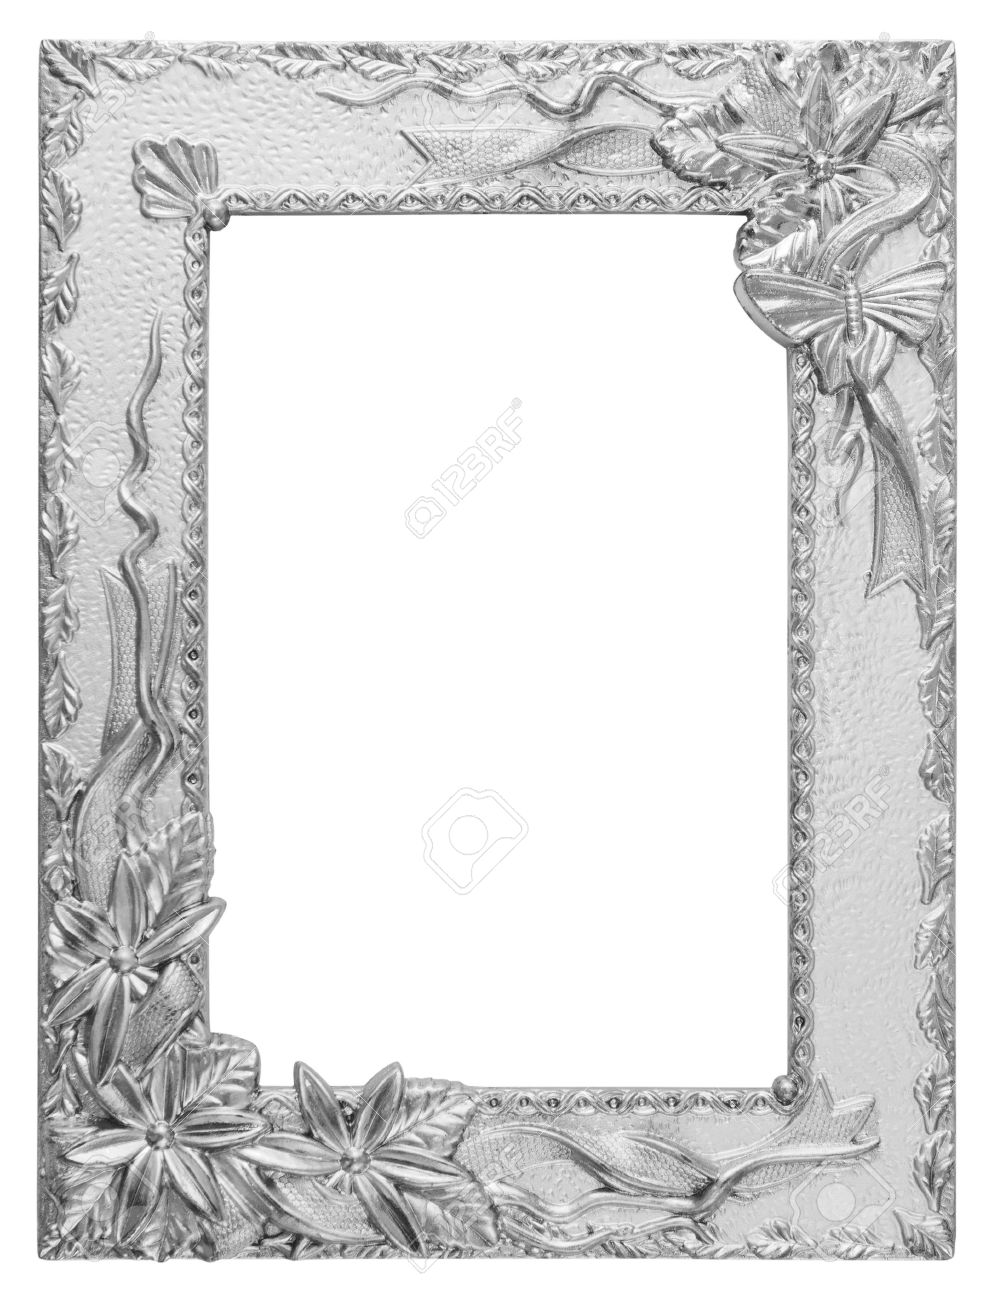 antique love silver frame isolated on white Stock Photo - 20463436